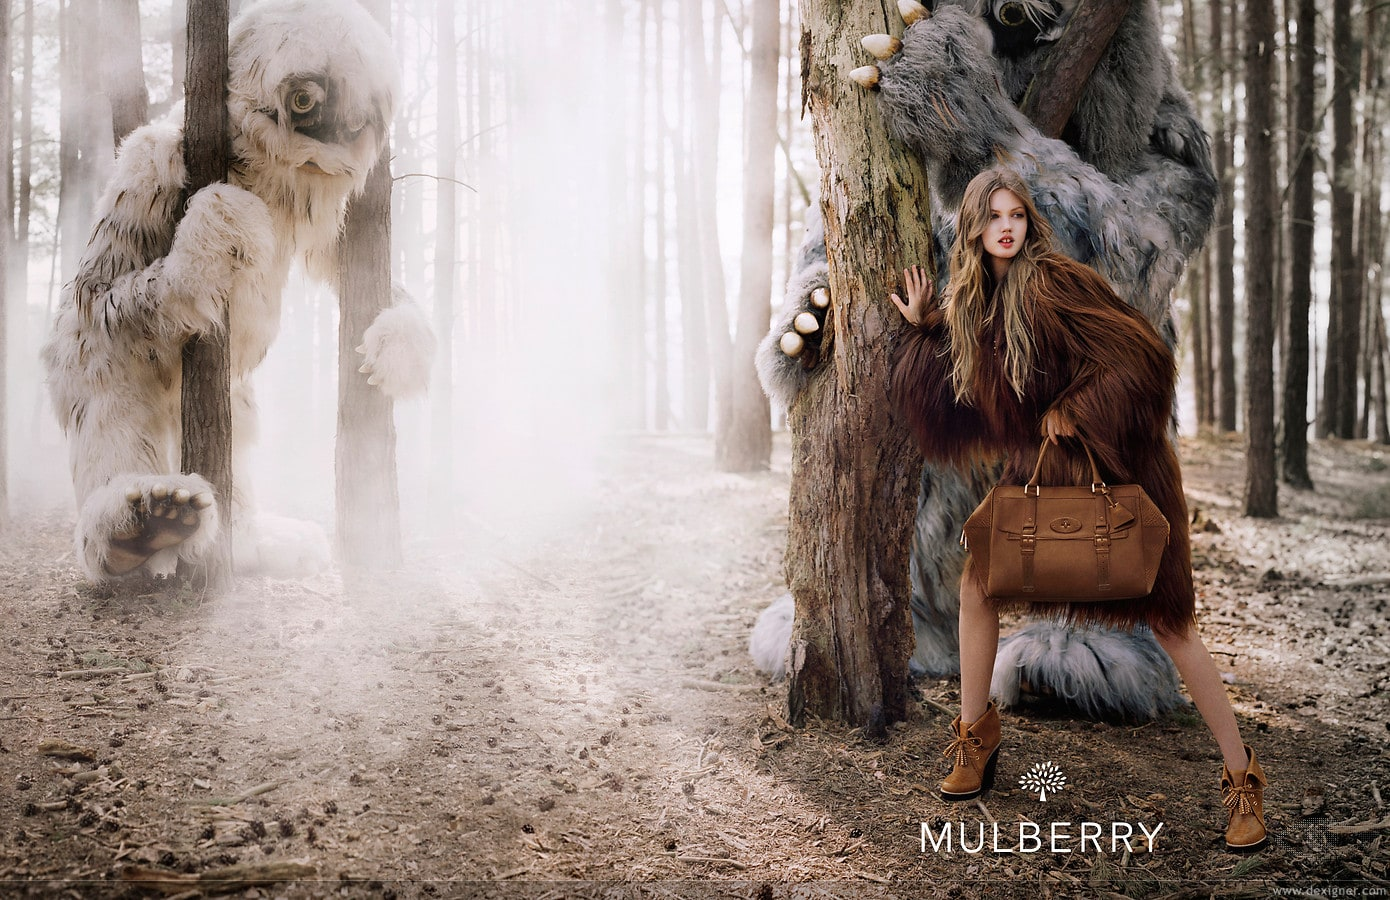 Mulberry_2012_Autumn_Winter_03_gallery